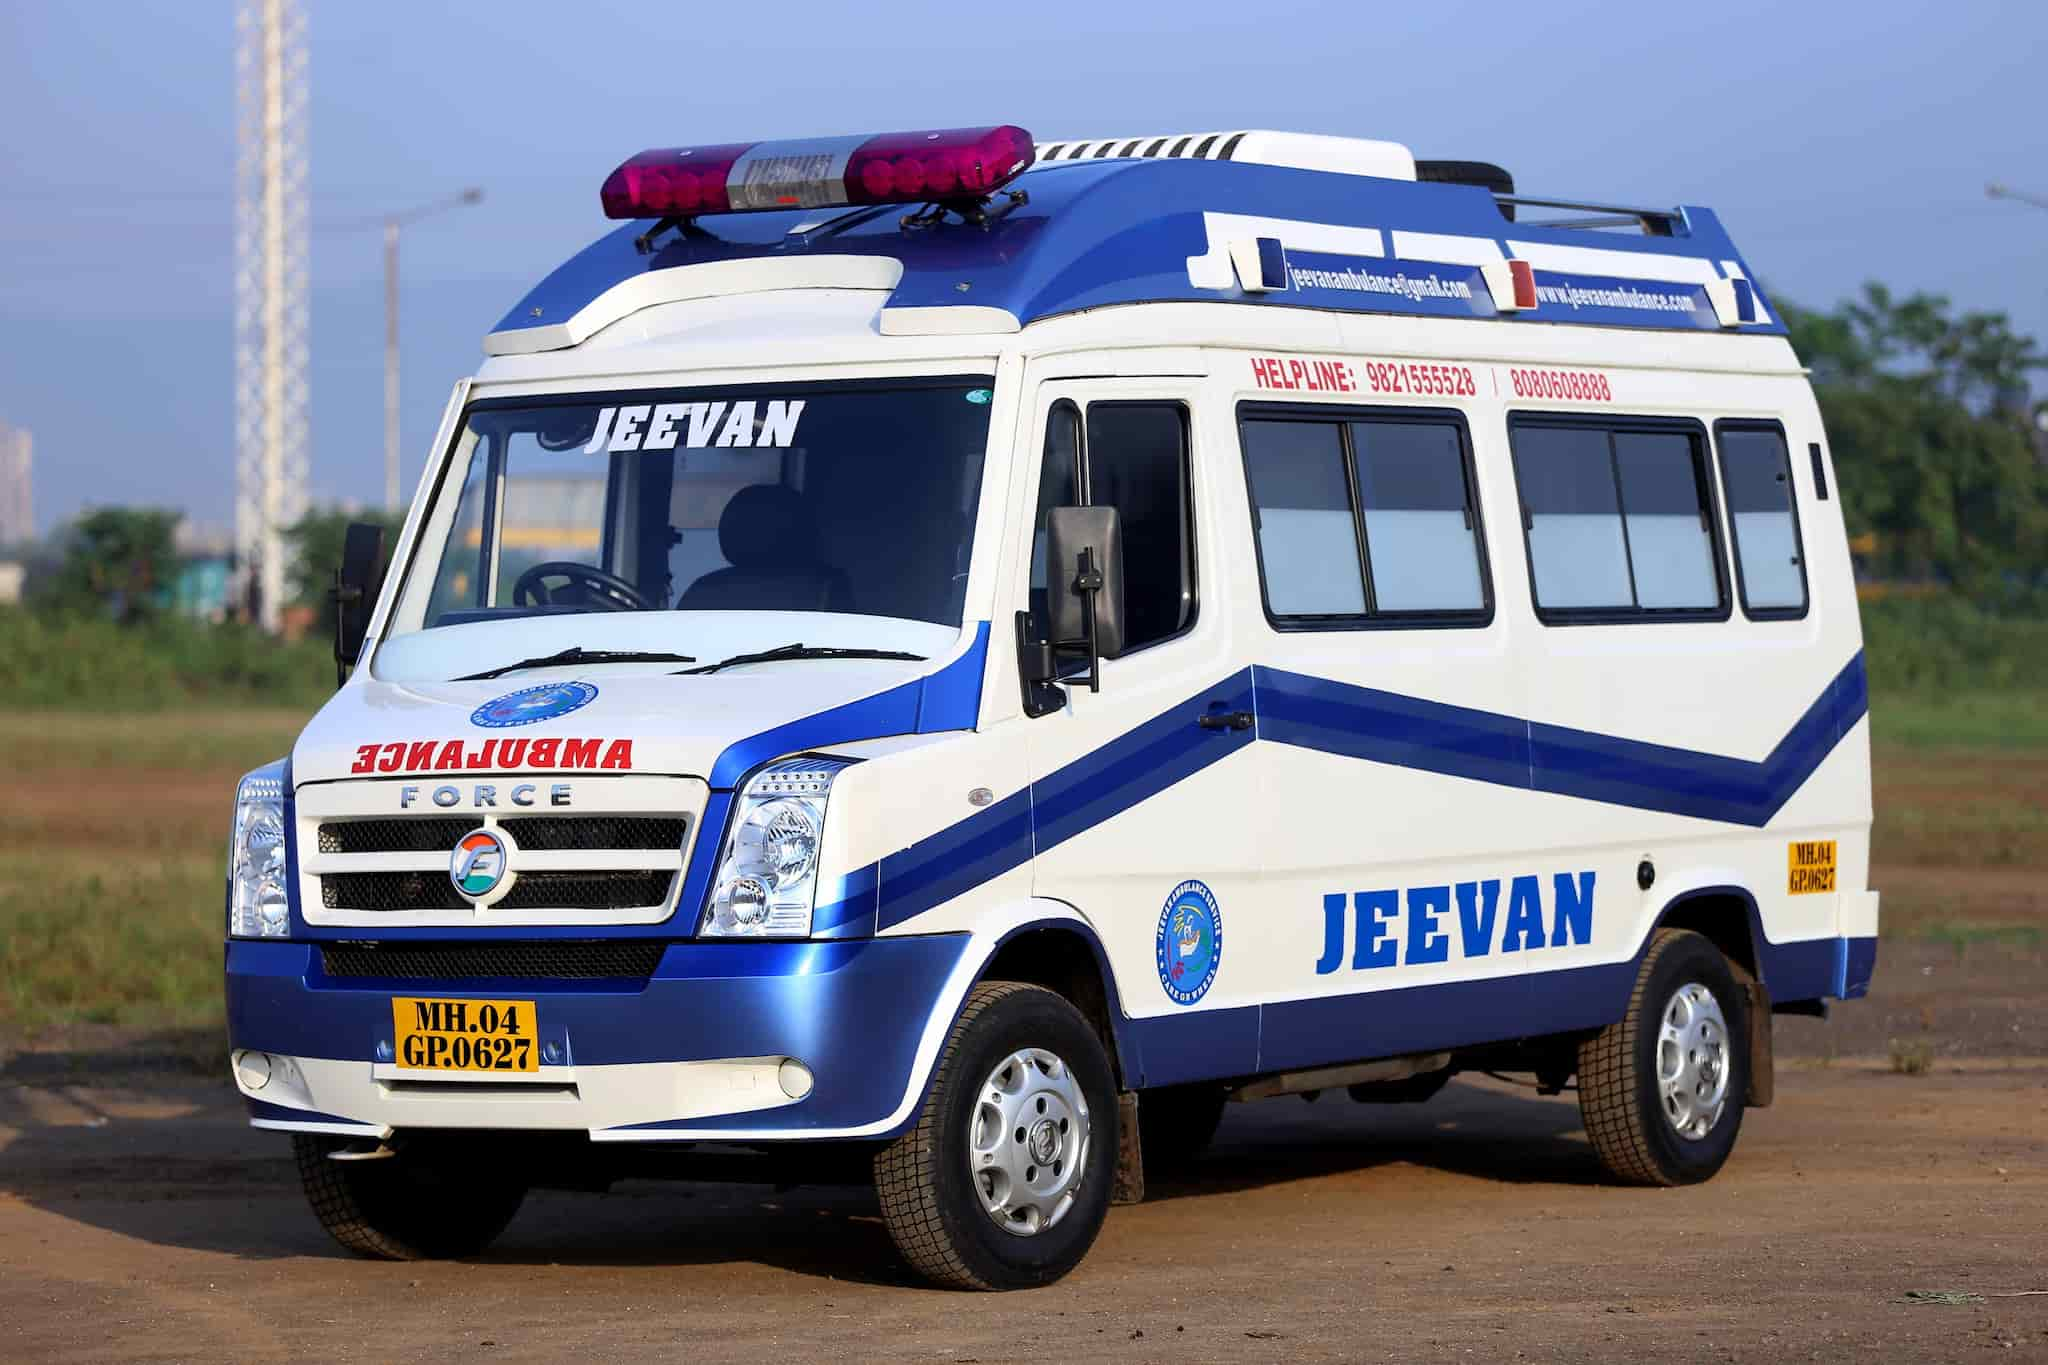 Jeevan Ambulance Service, Thane West - Ambulance Services in